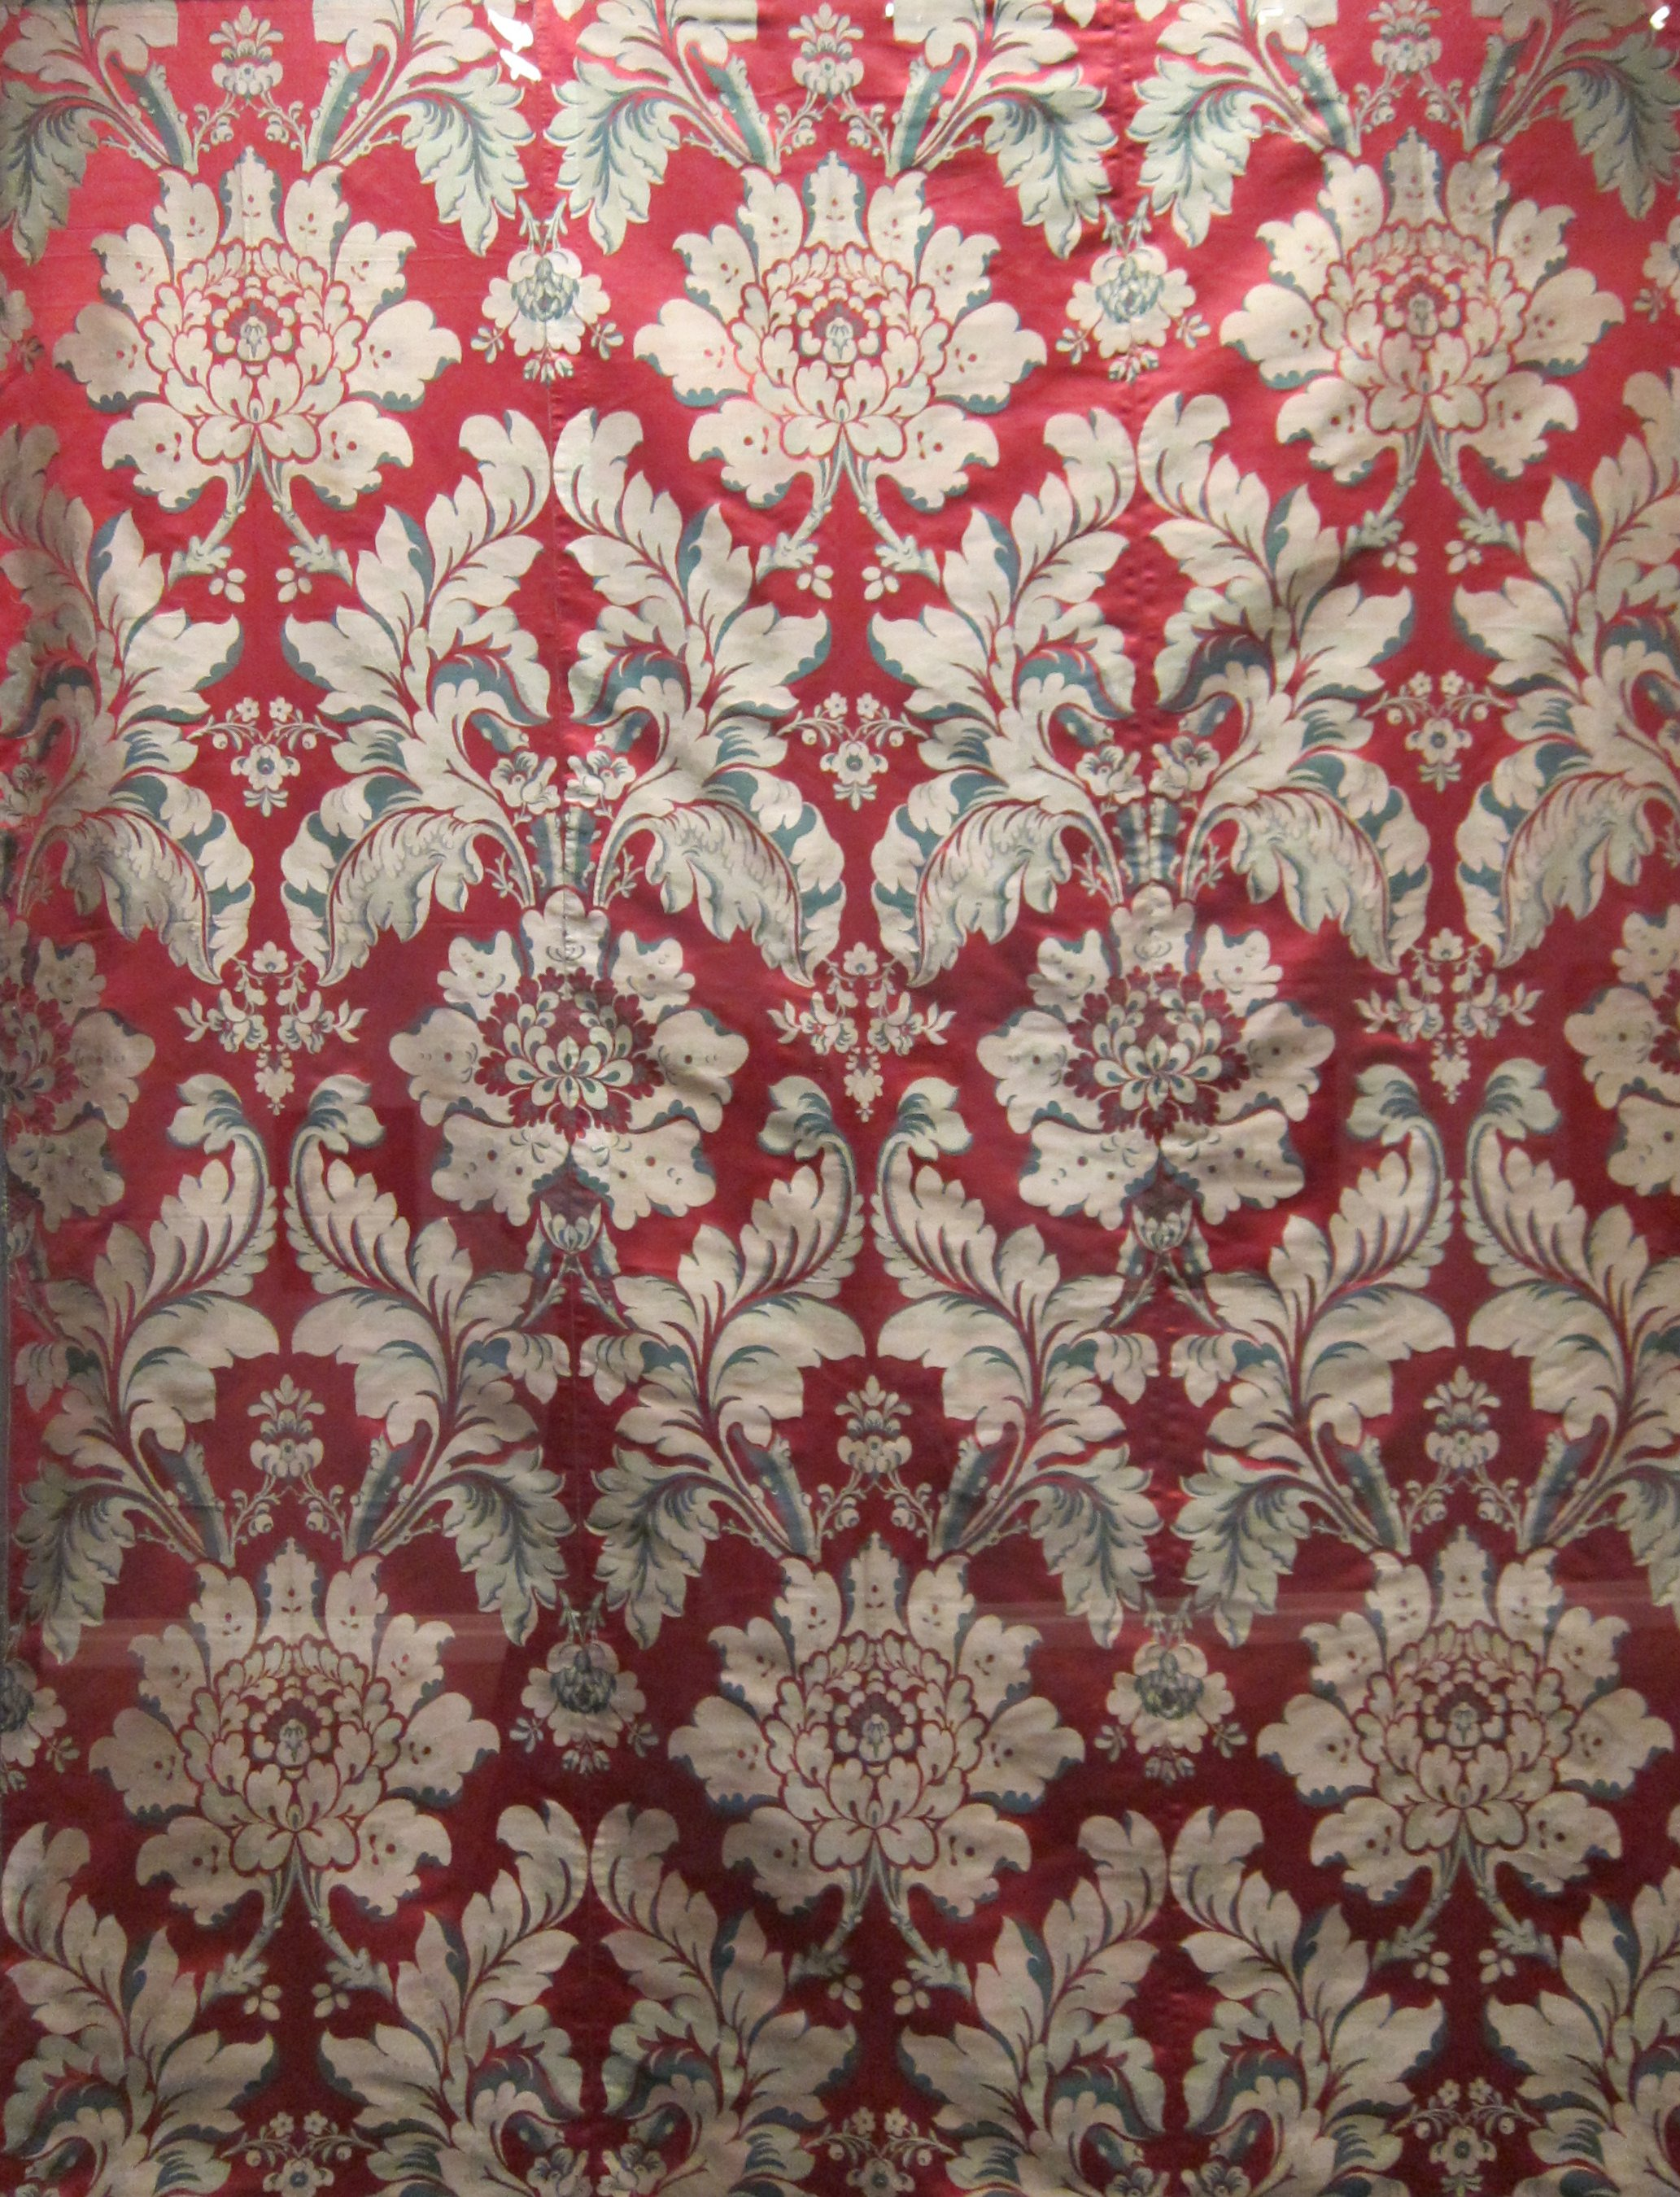 file italian silk furnishing fabric late 17th early 18th